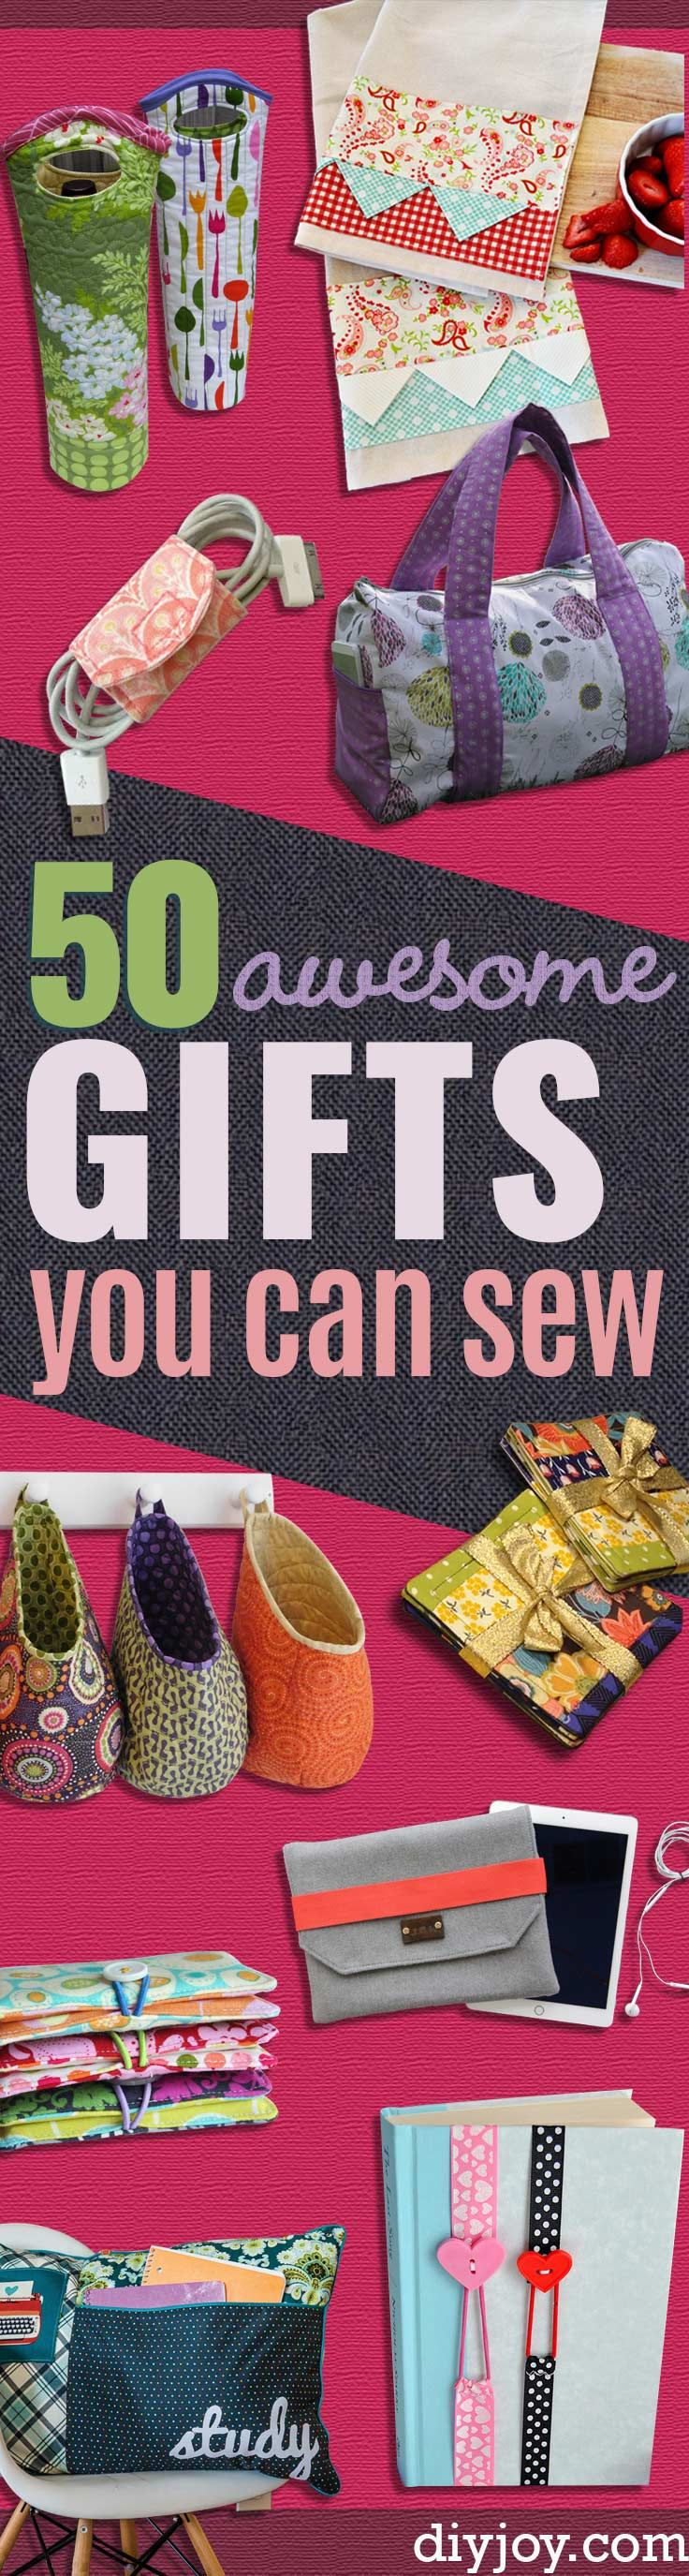 DIY Sewing Gift Ideas for Adults and Kids Teens Women Men and Baby  Cute and Easy DIY Sewing Projects Make Awesome Presents